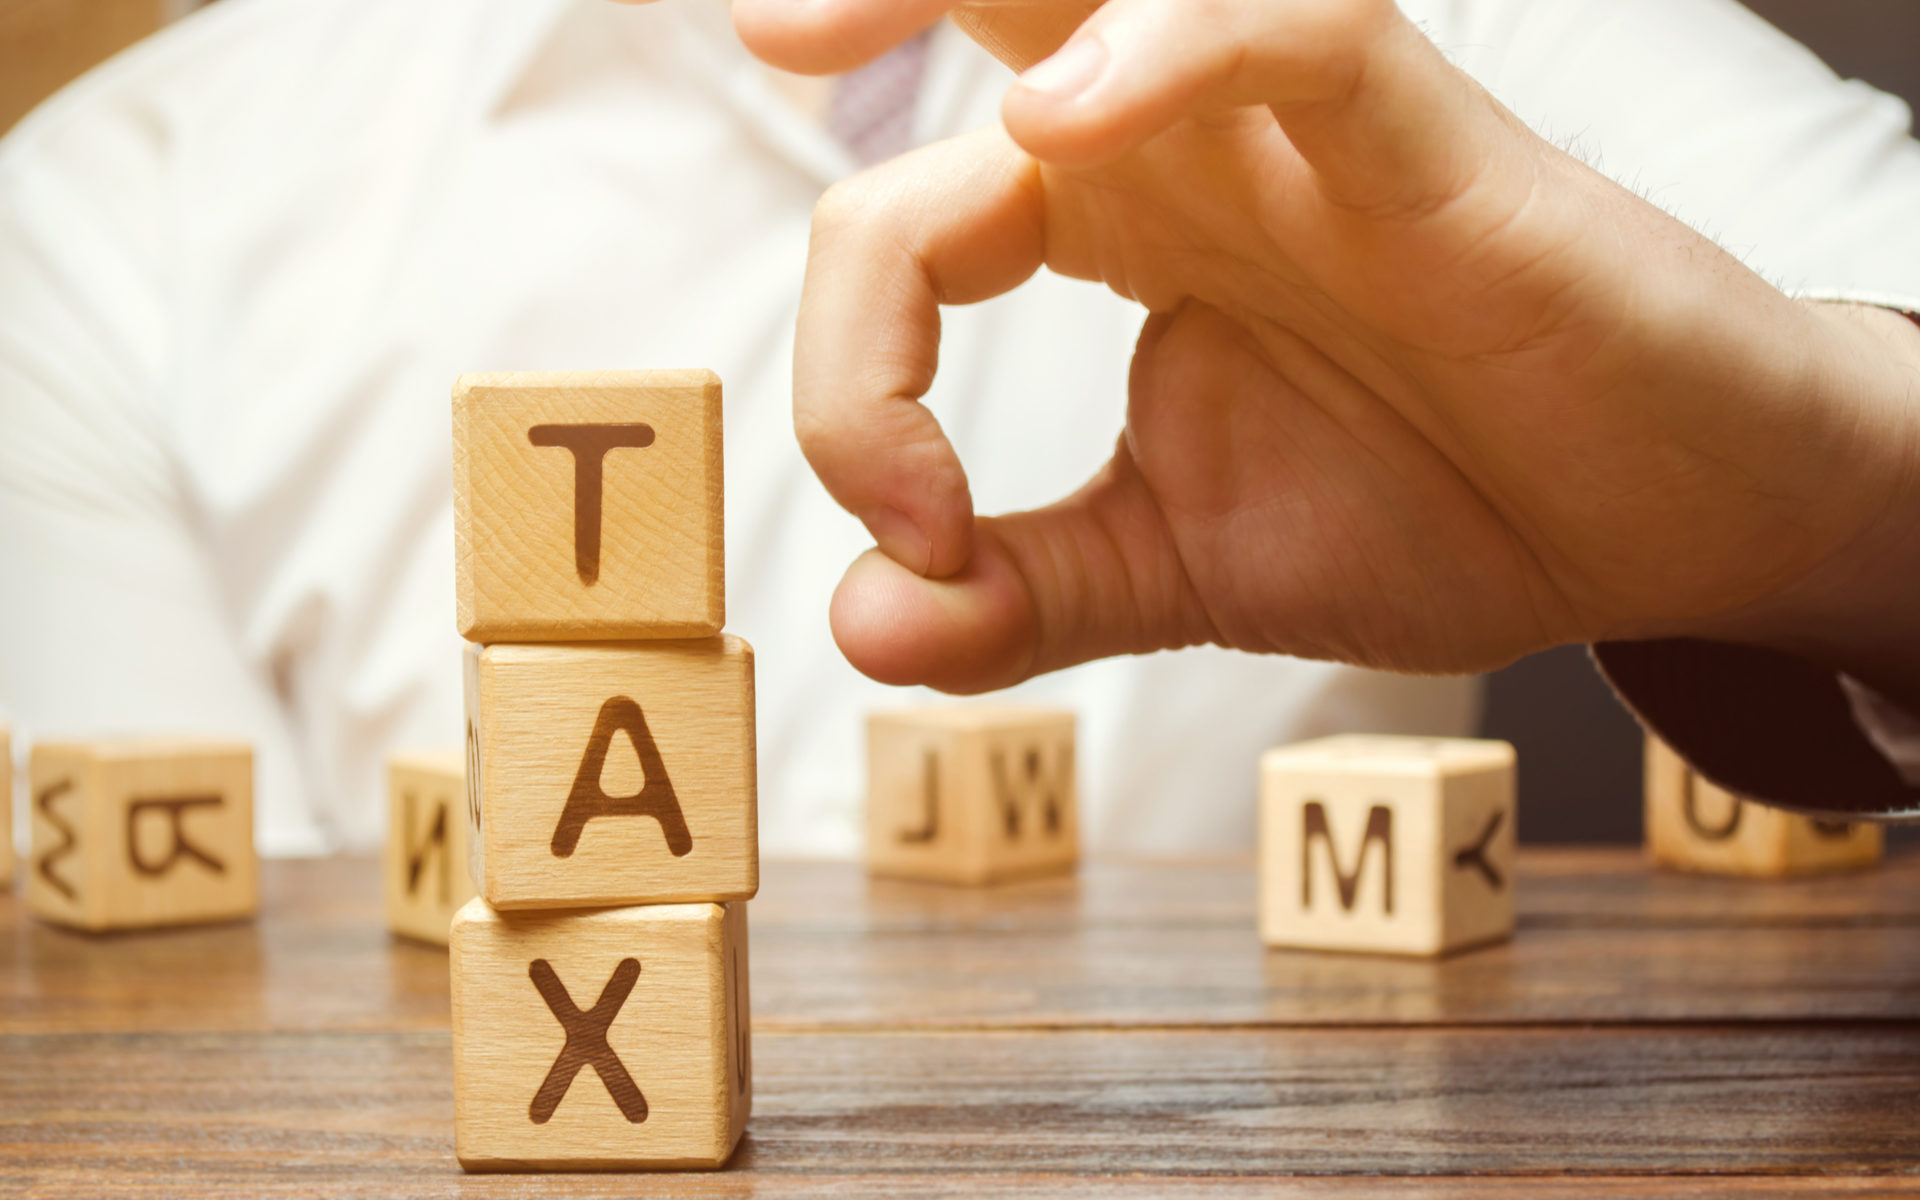 singapore exempting bitcoin from tax